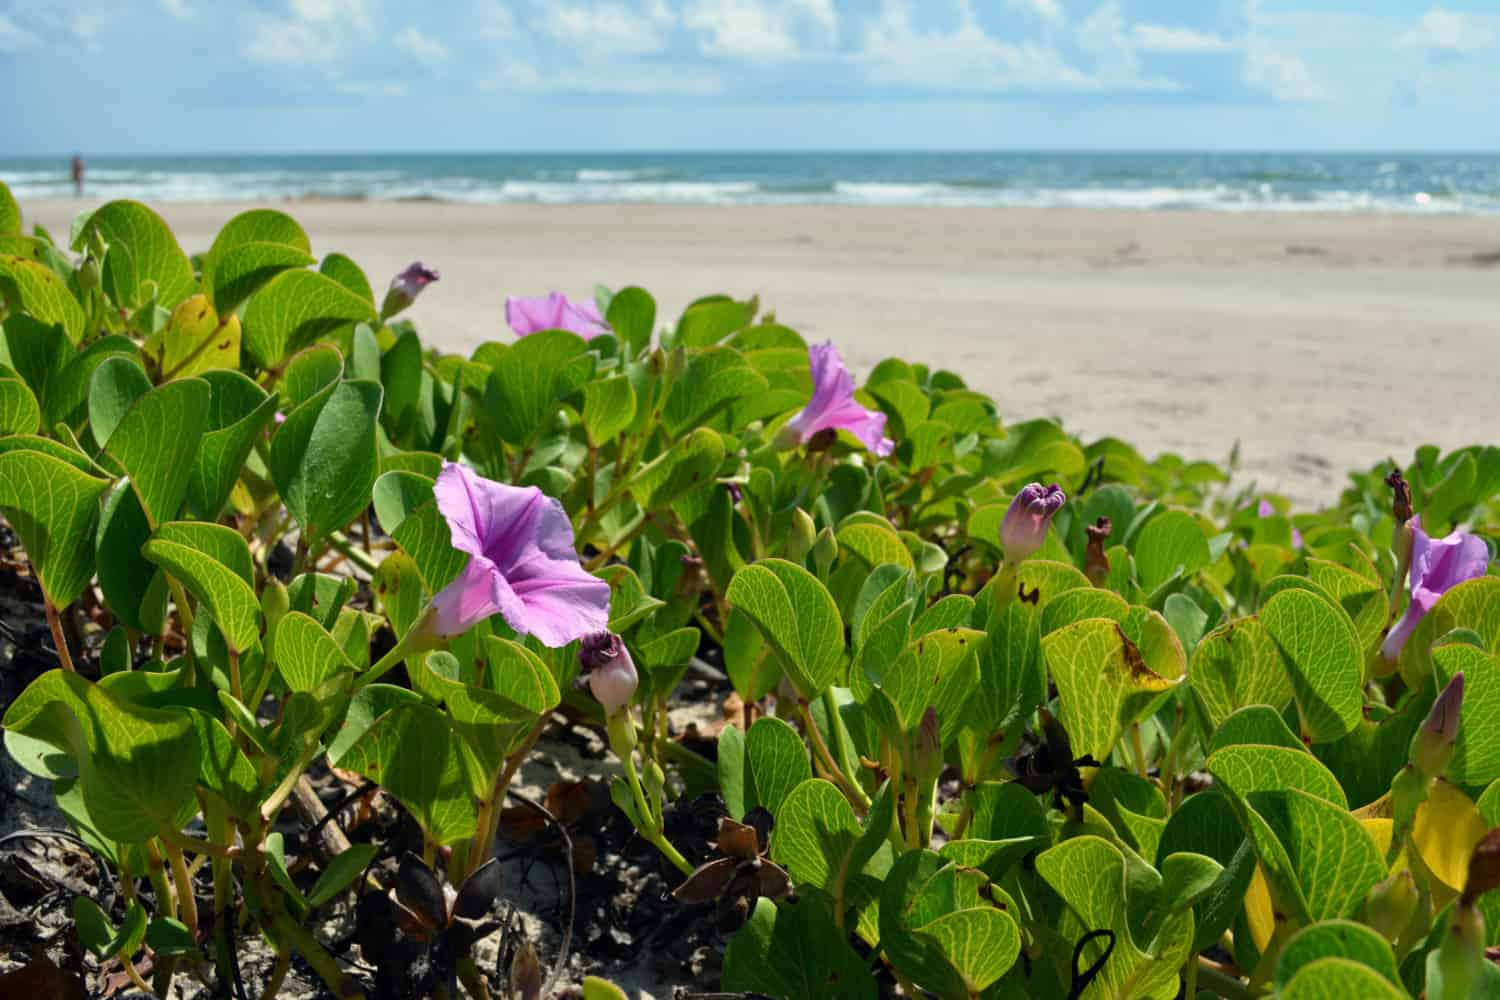 Dog Friendly Padre Island National Seashore | GoPetFriendly.com